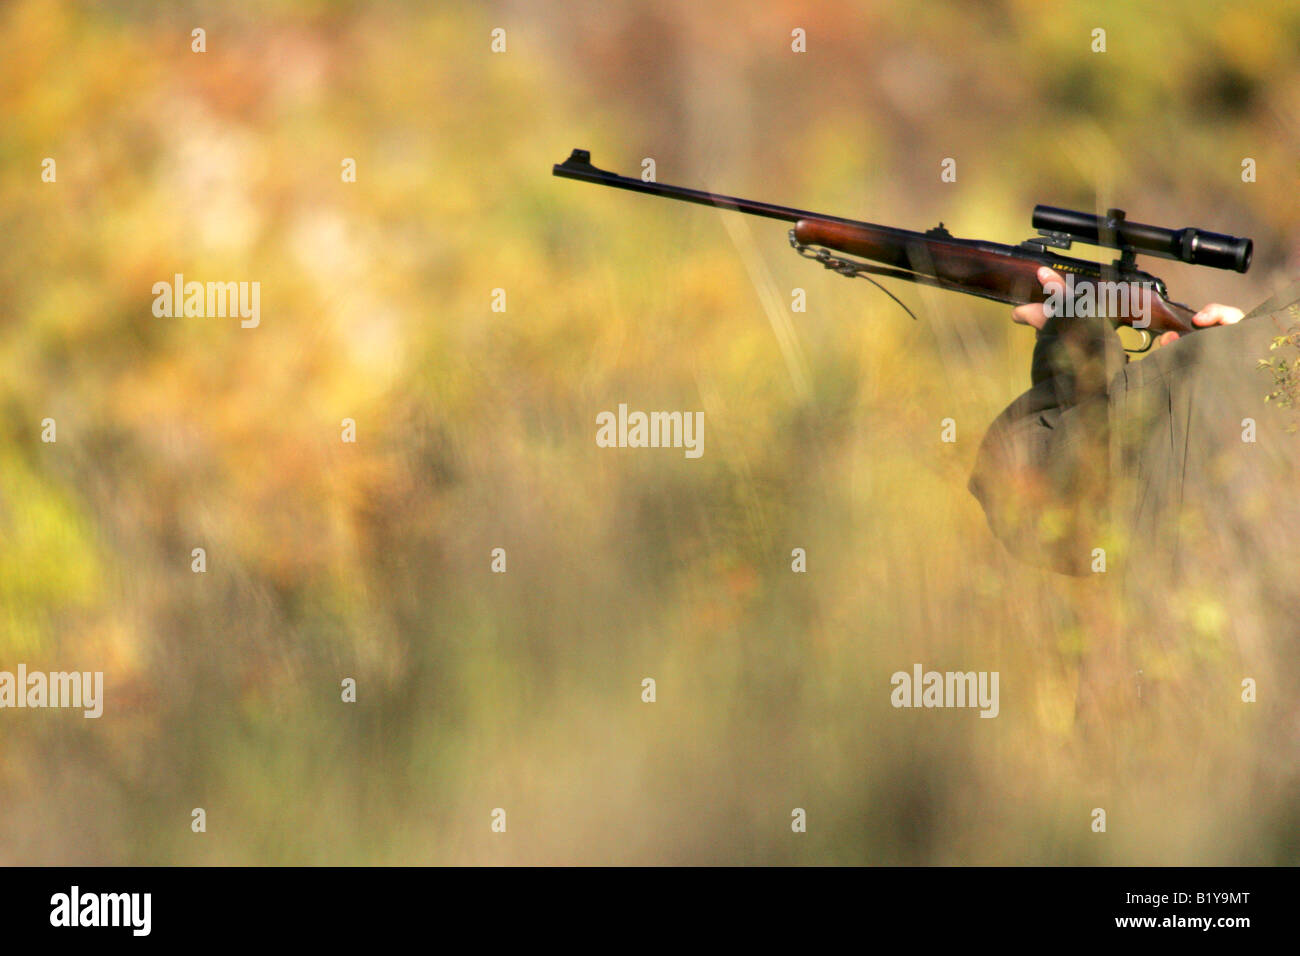 hunter with a gun - Stock Image